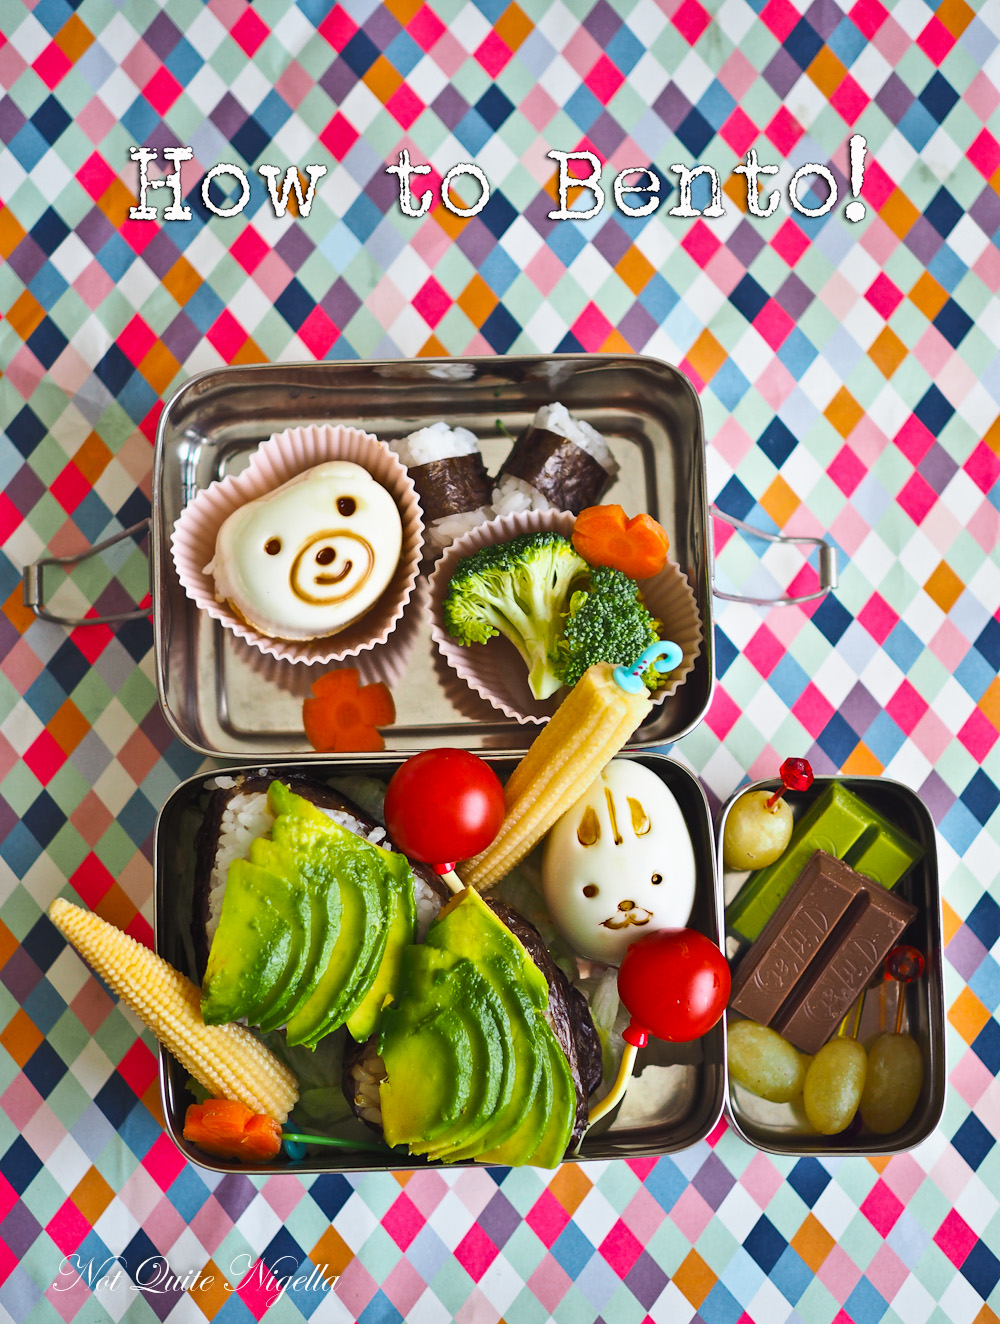 How To Make a Bento Meal